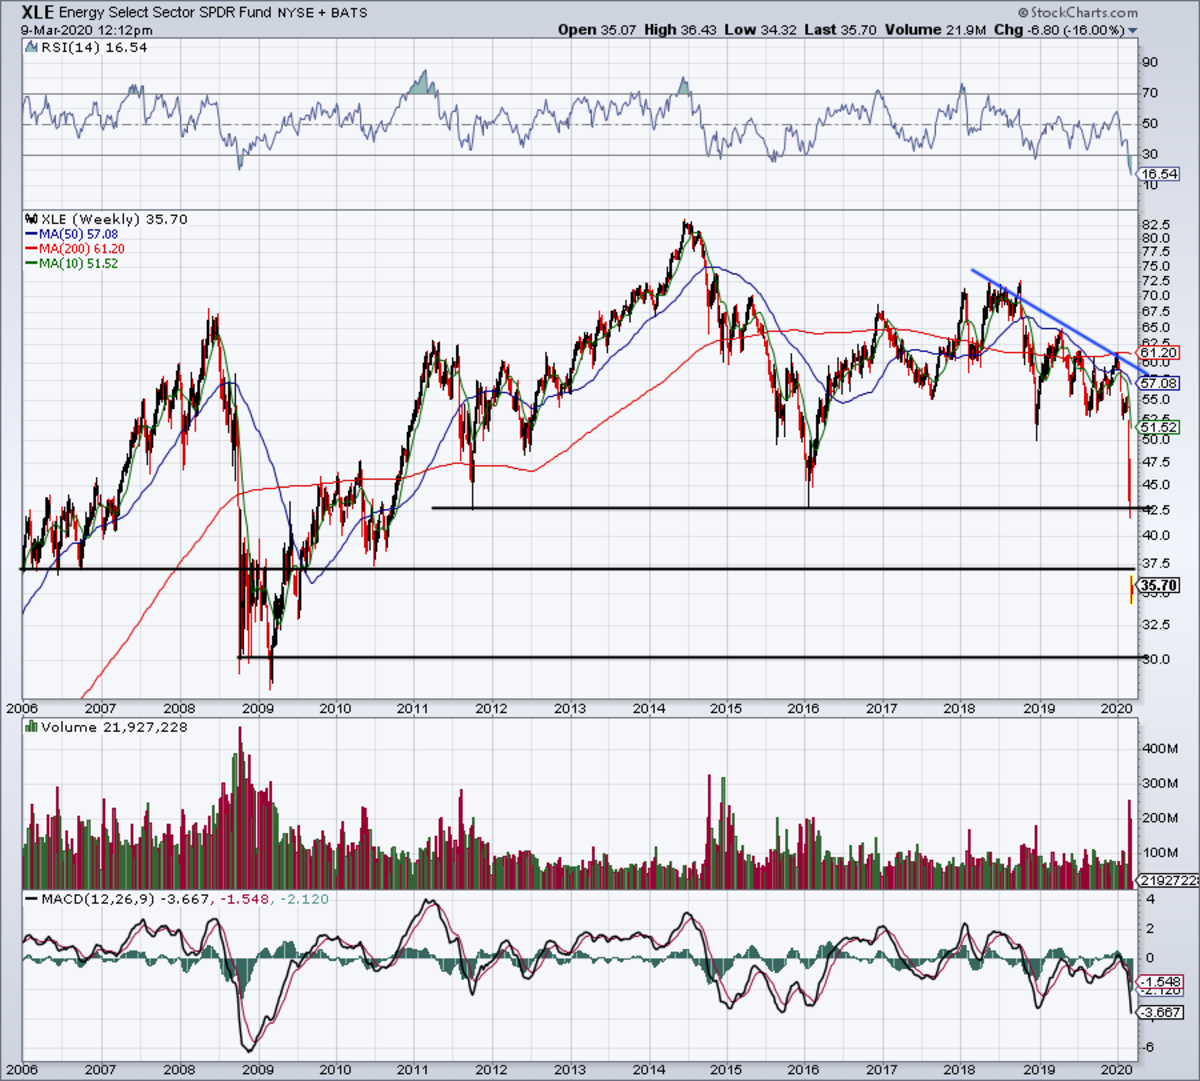 14-year weekly chart of the XLE ETF.